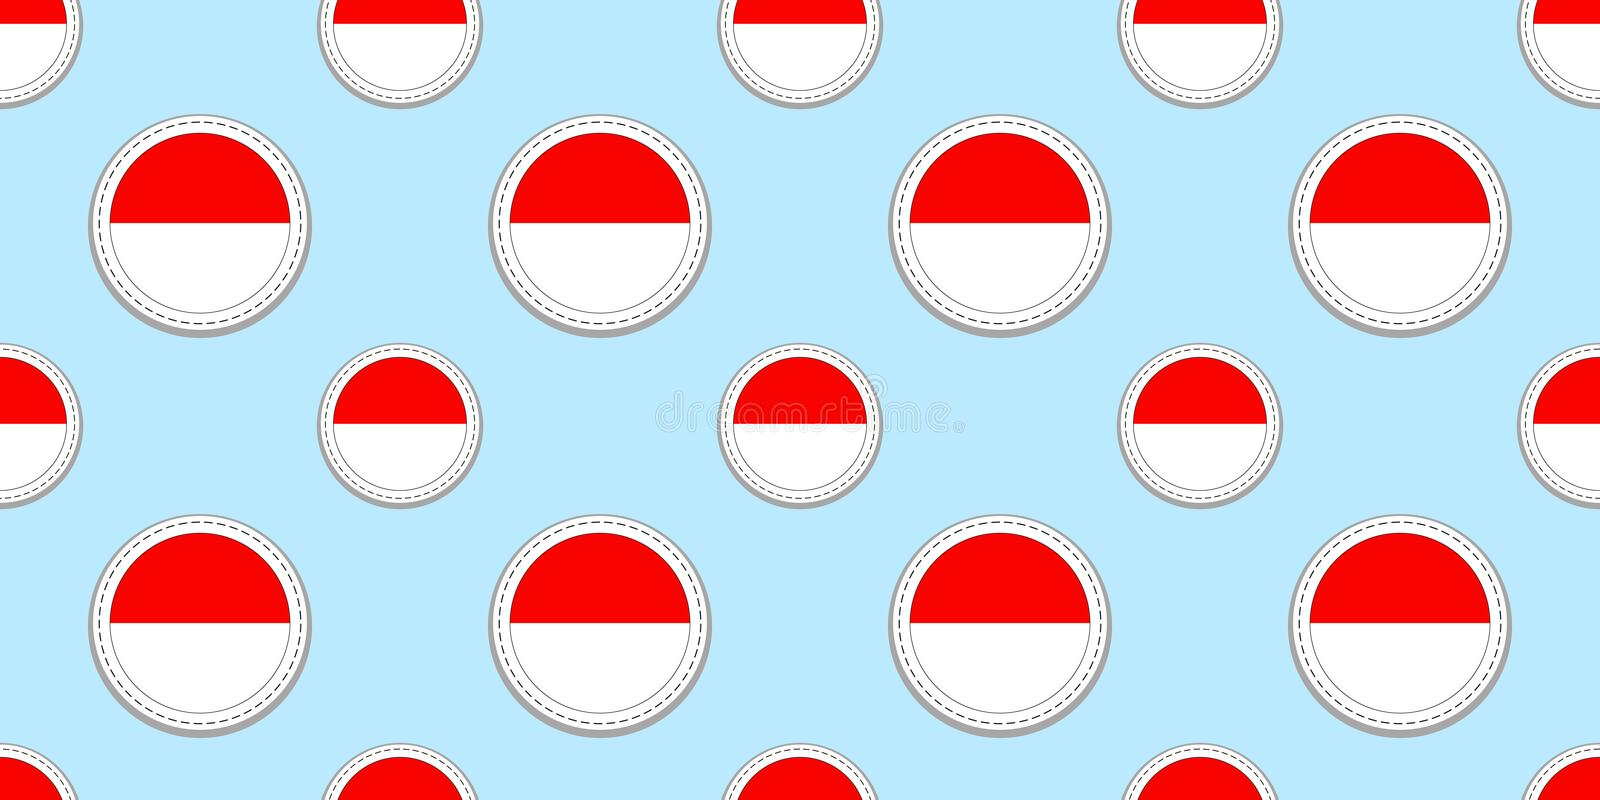 Indonesia background. Indonesian flag seamless pattern. Vector stickers. Love hearts symbols. Good choice for sports royalty free illustration